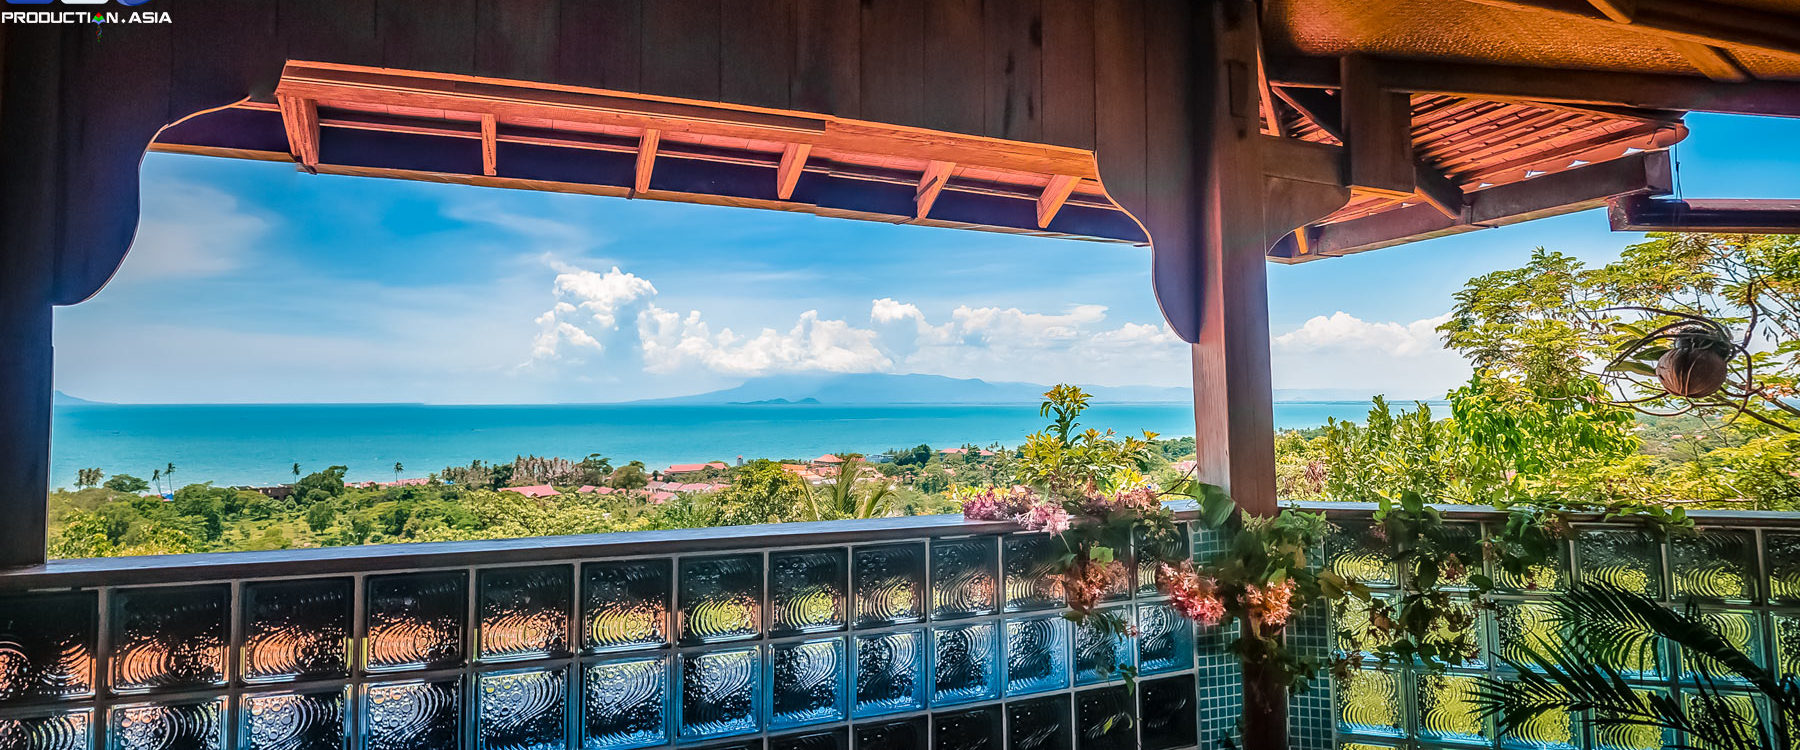 Villa Penthouse Bungalow private terrace and view to the Gulf of Thailand - Pacific Ocean in Veranda Natural Resort, Kep - Cambodia.